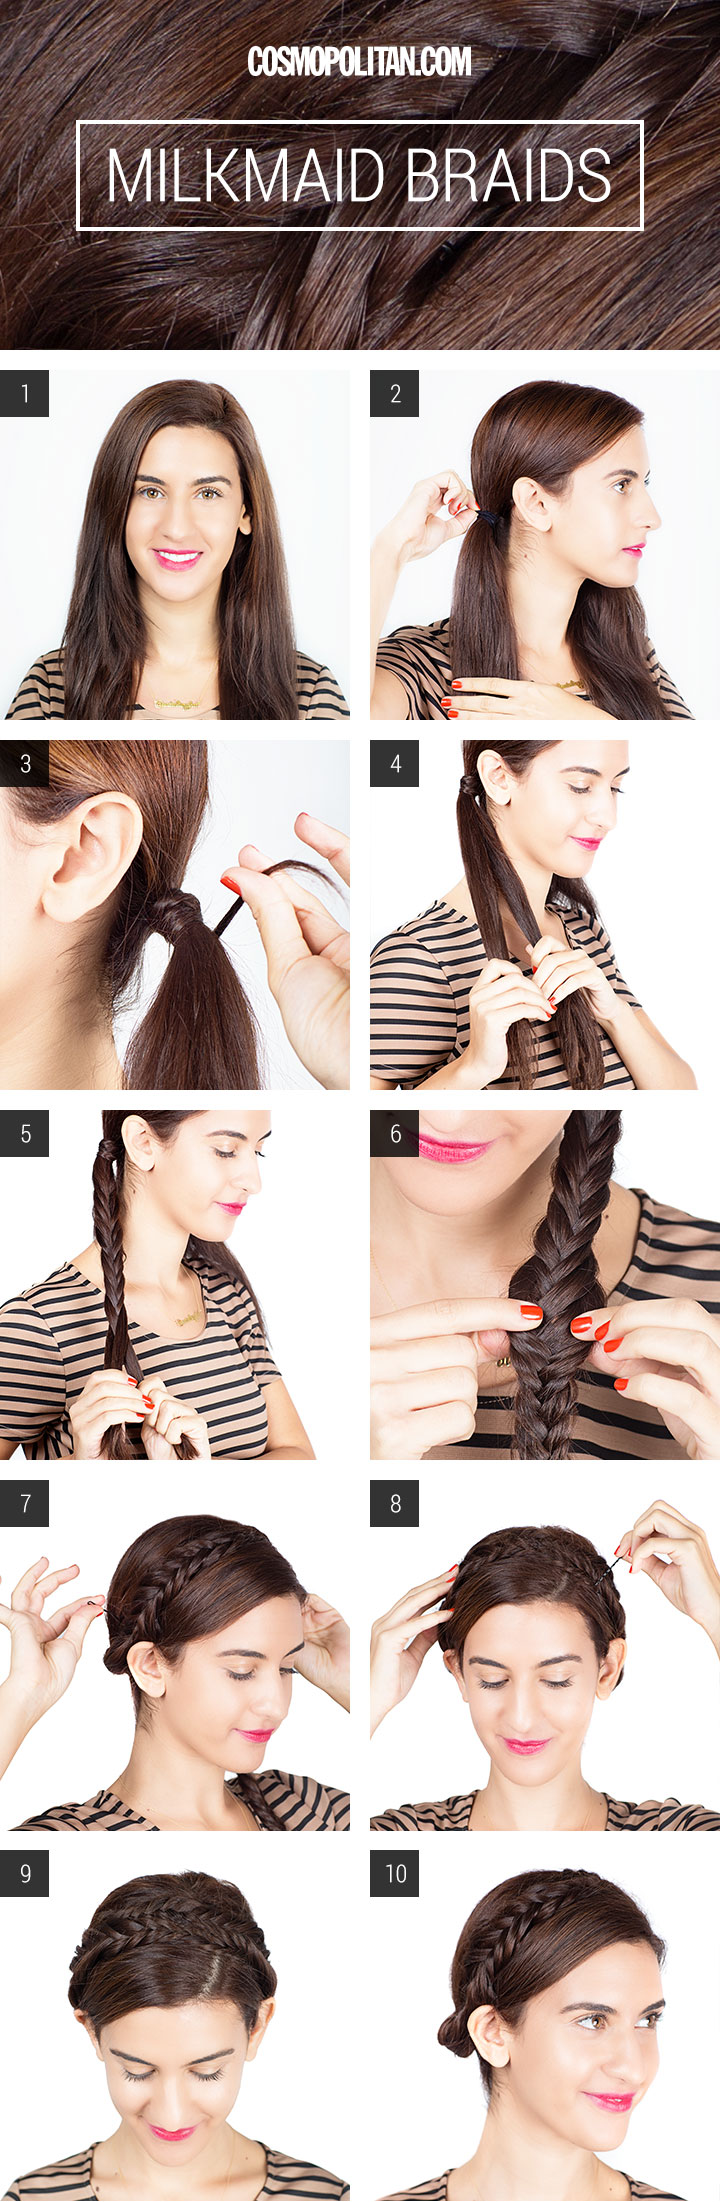 Sensational Hair Tutorials 15 Simple Easy Hairstyles You Should Not Miss Hairstyle Inspiration Daily Dogsangcom